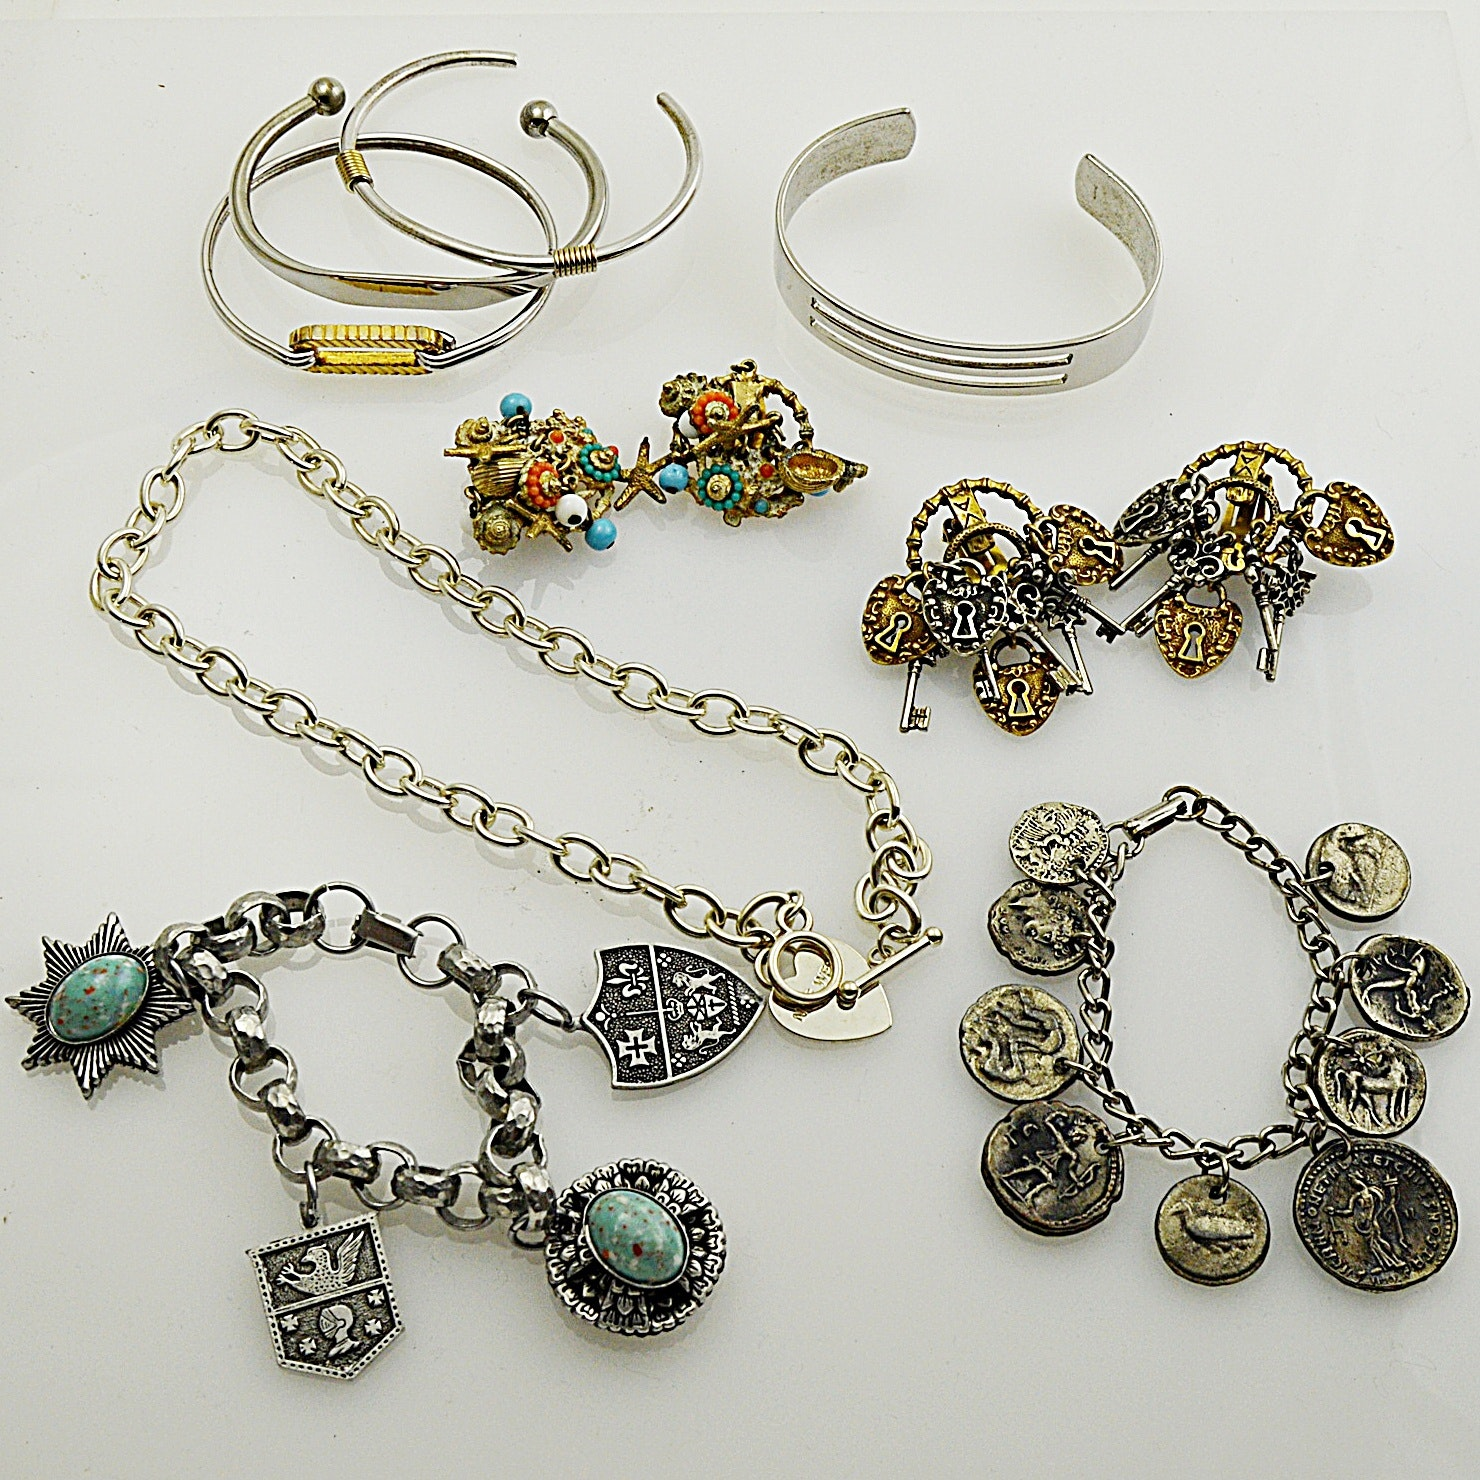 Silver Tone Jewelry with Charm Earrings, Faux Coin Bracelet